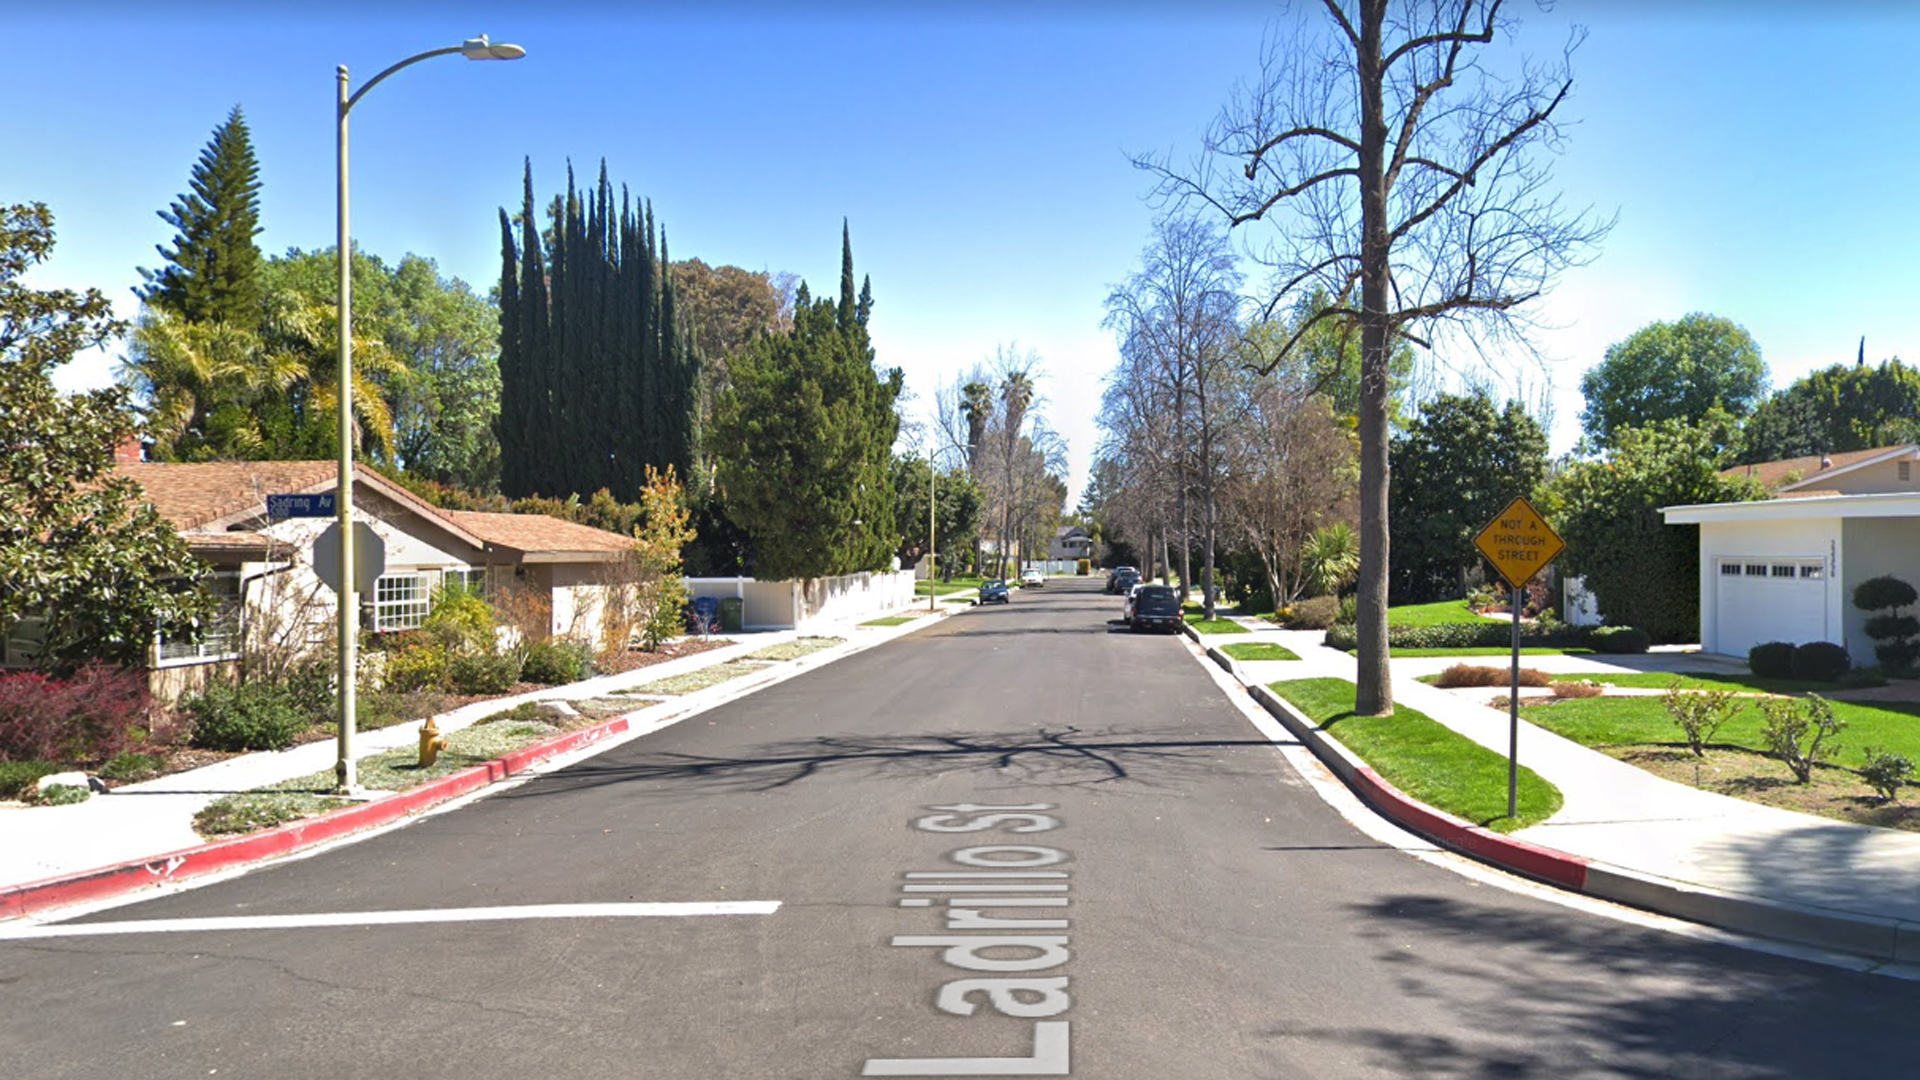 The 23300 block of Ladrillo Street in Woodland Hills, as viewed in a Google Street View image.